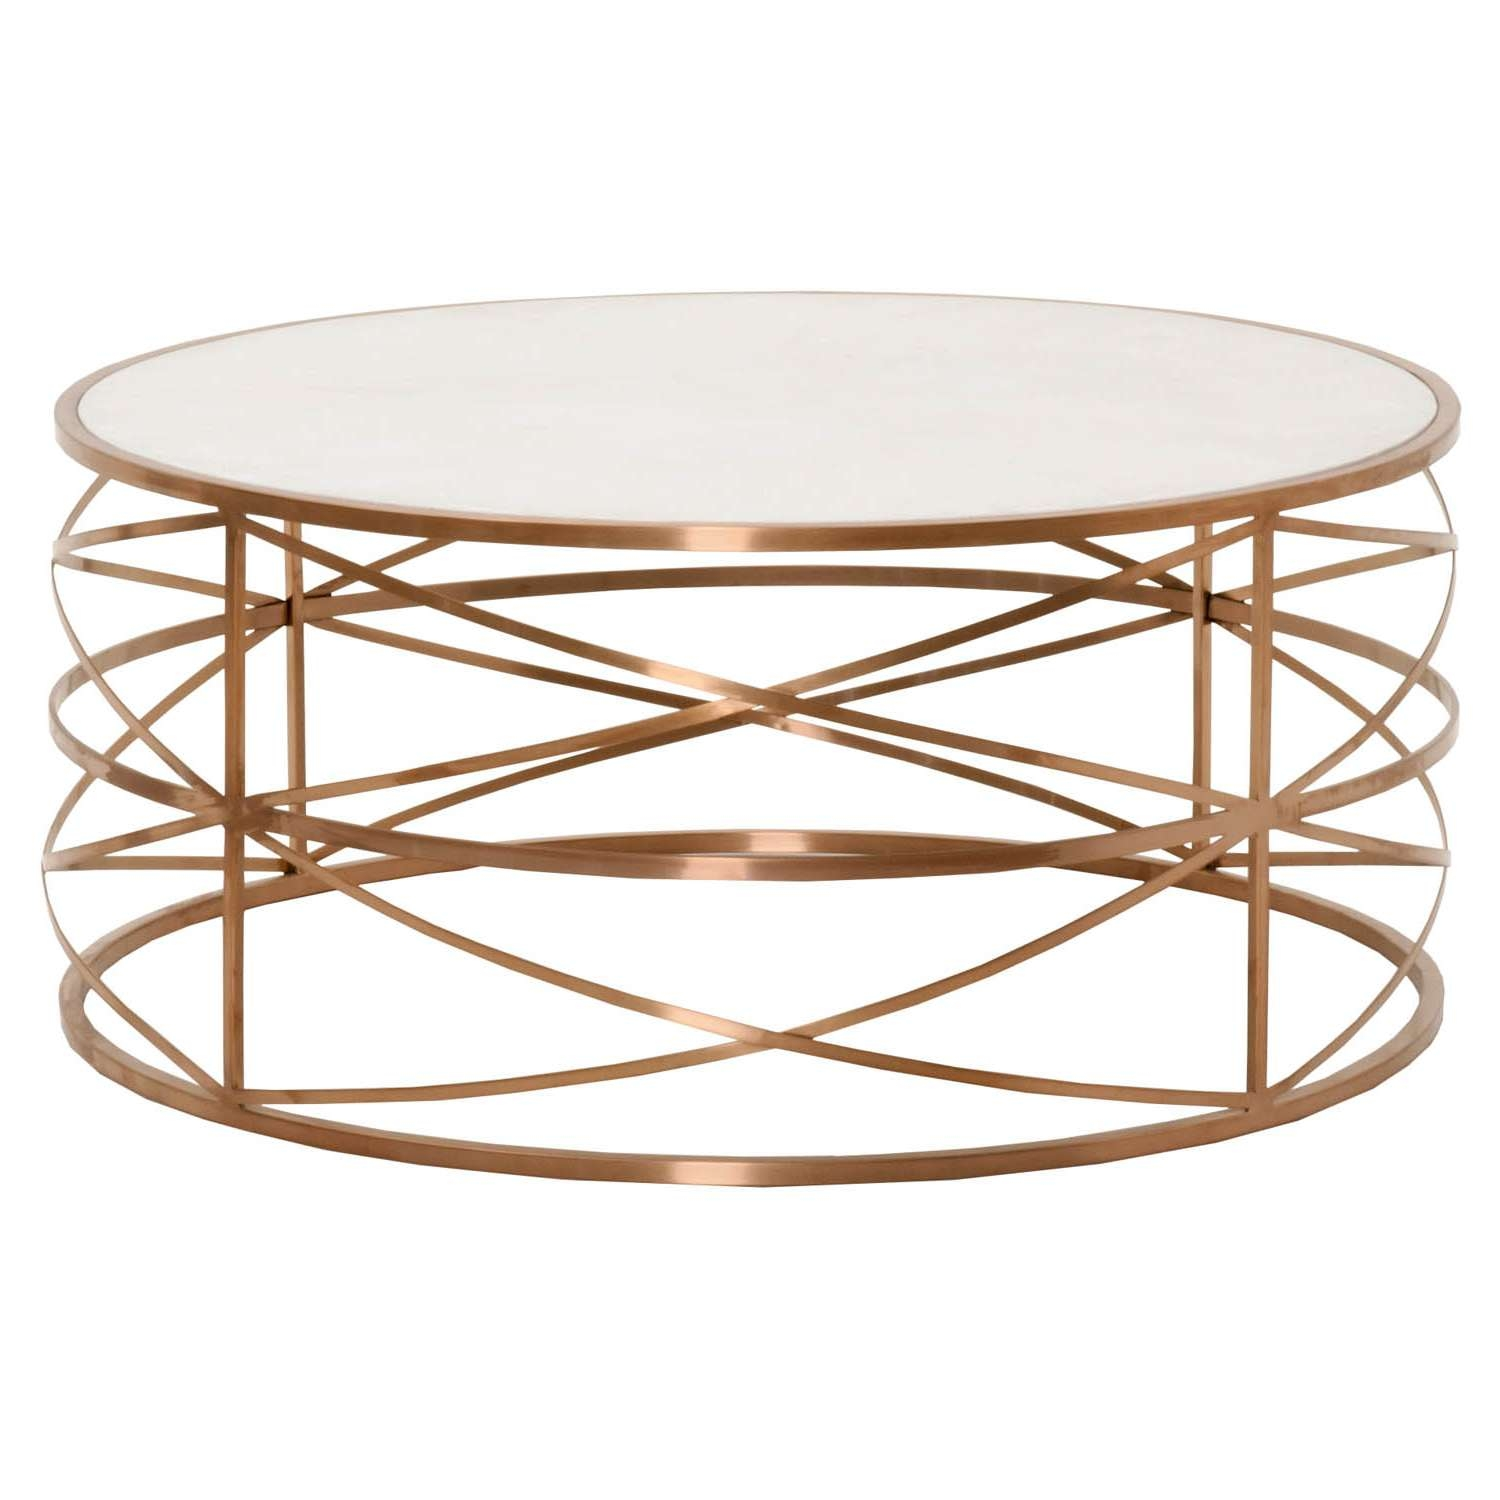 Arte Fina Furniture – Furniture, Decor With Most Up To Date Gold Round Coffee Table (Gallery 5 of 20)